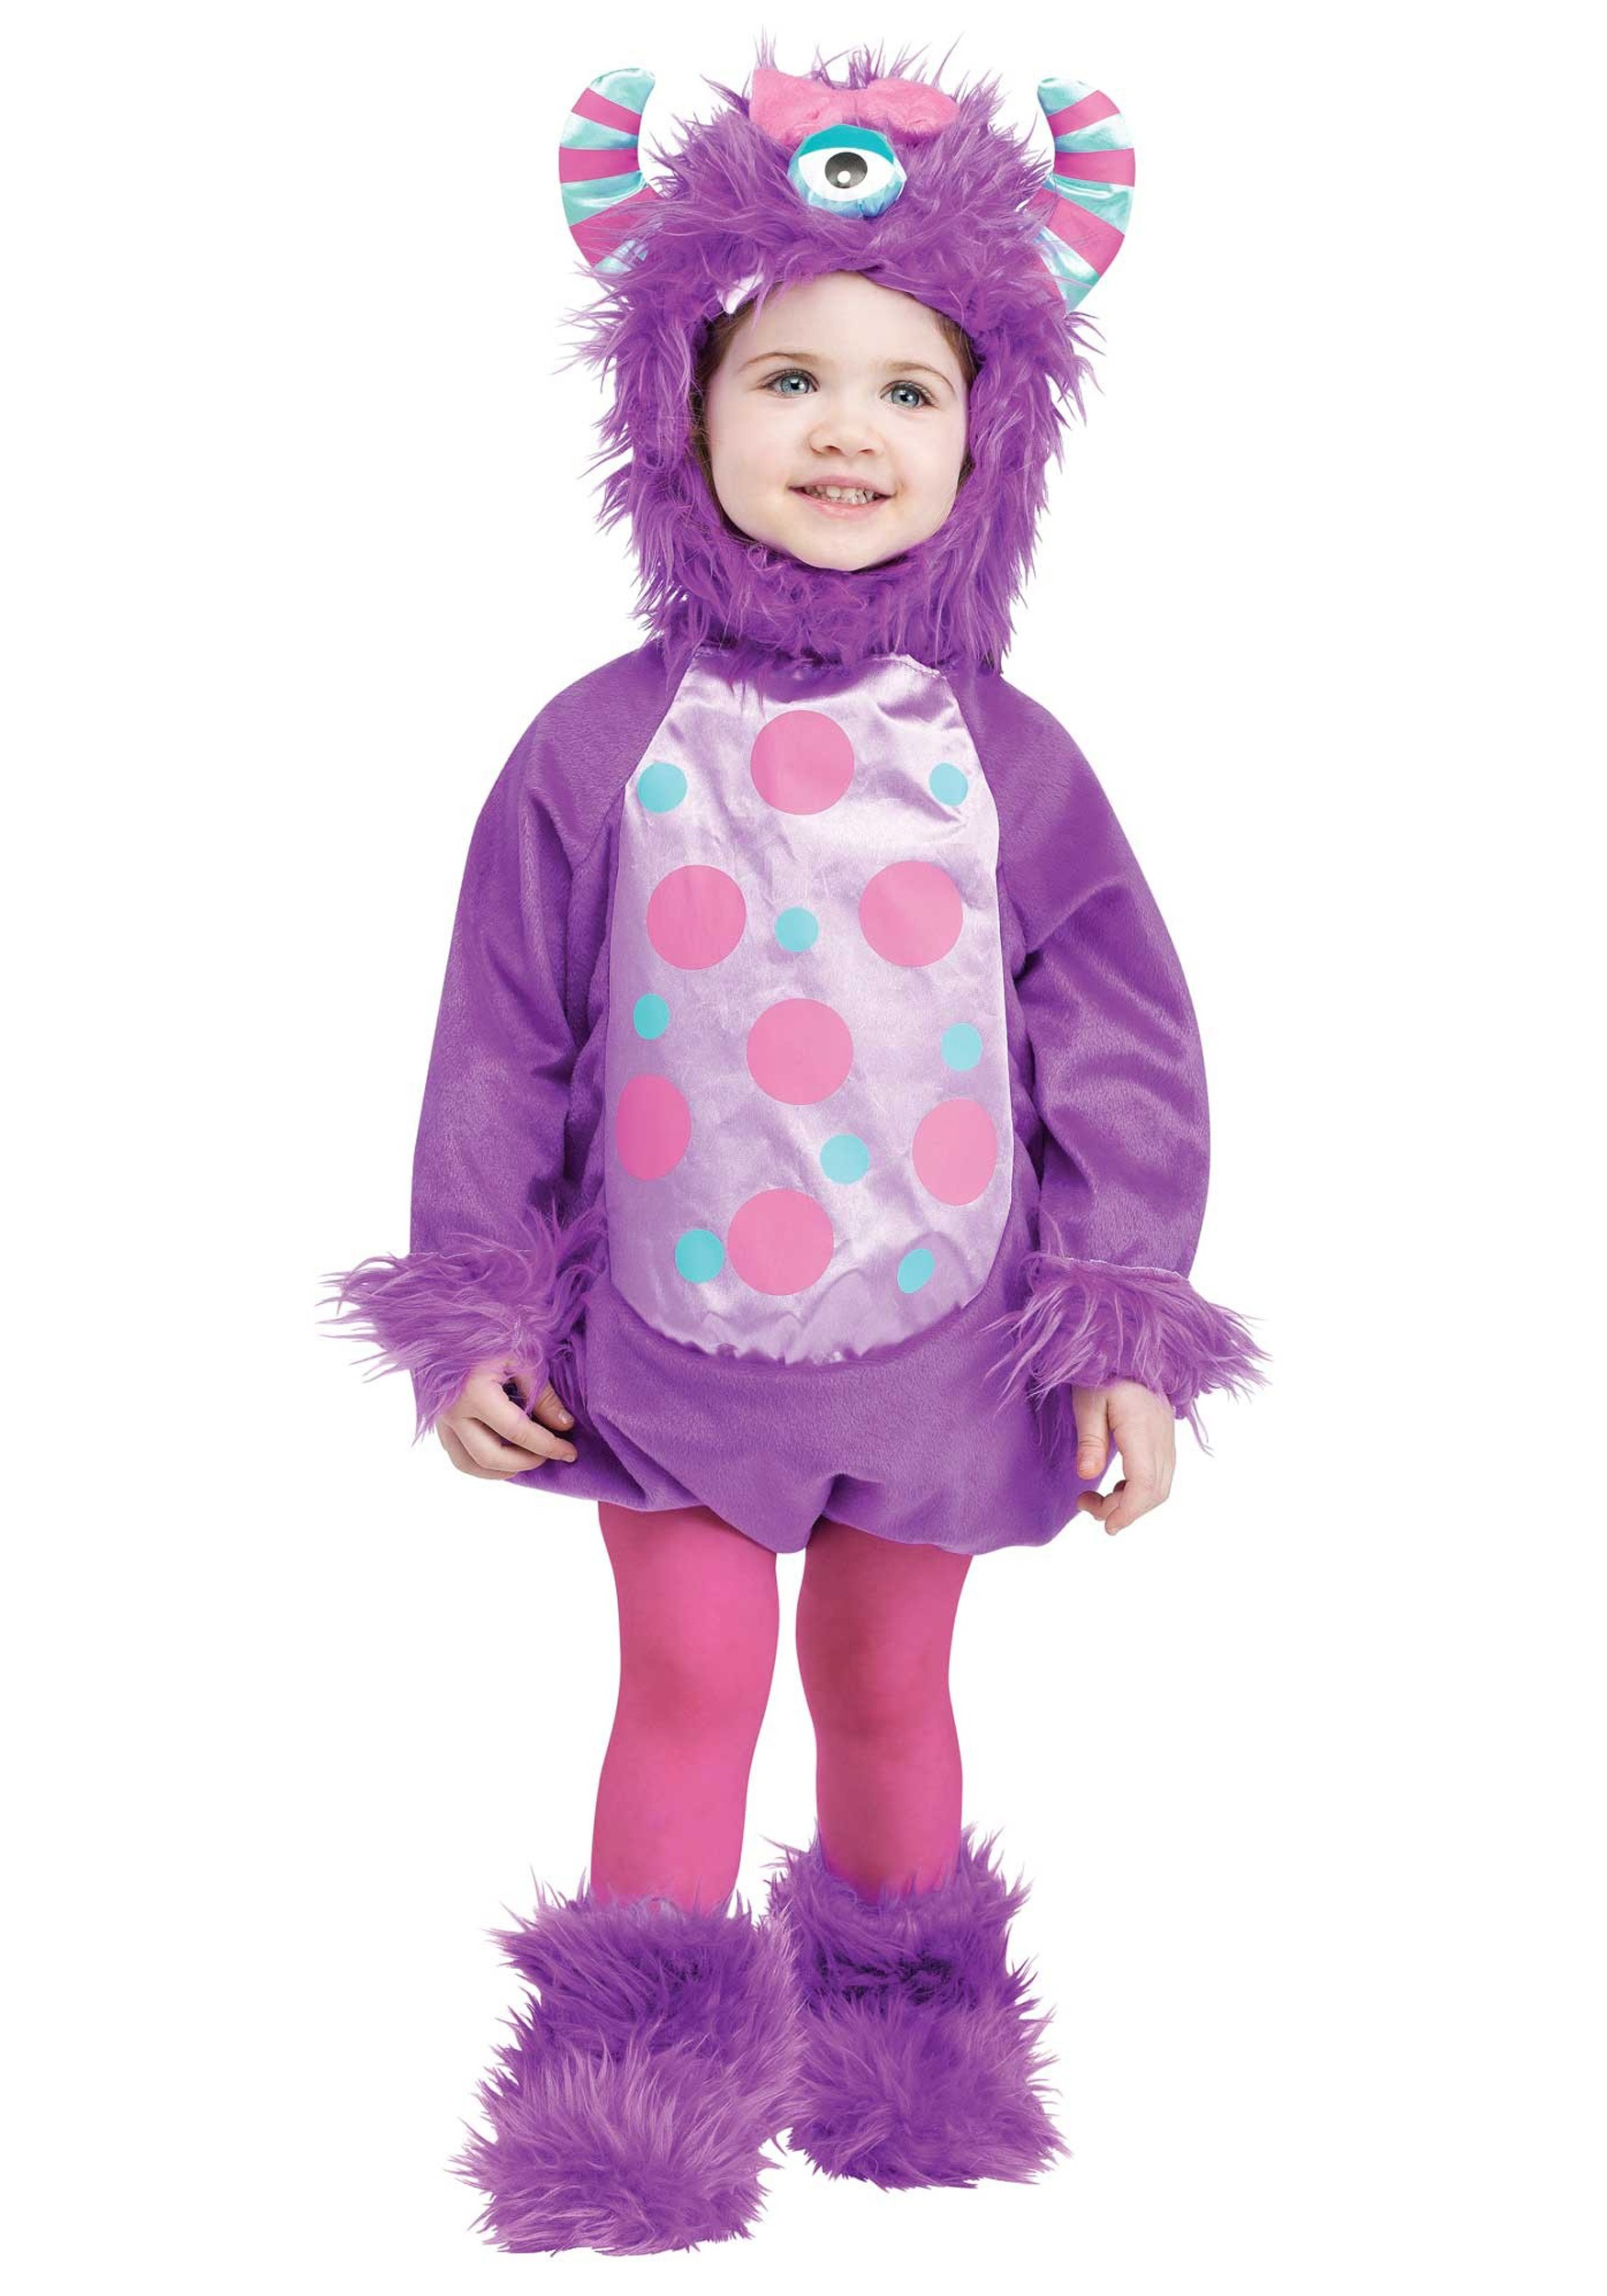 Infant Monster Baby Purple Costume  sc 1 st  Halloween Costumes & Infant Monster Baby Purple Costume - Halloween Costumes